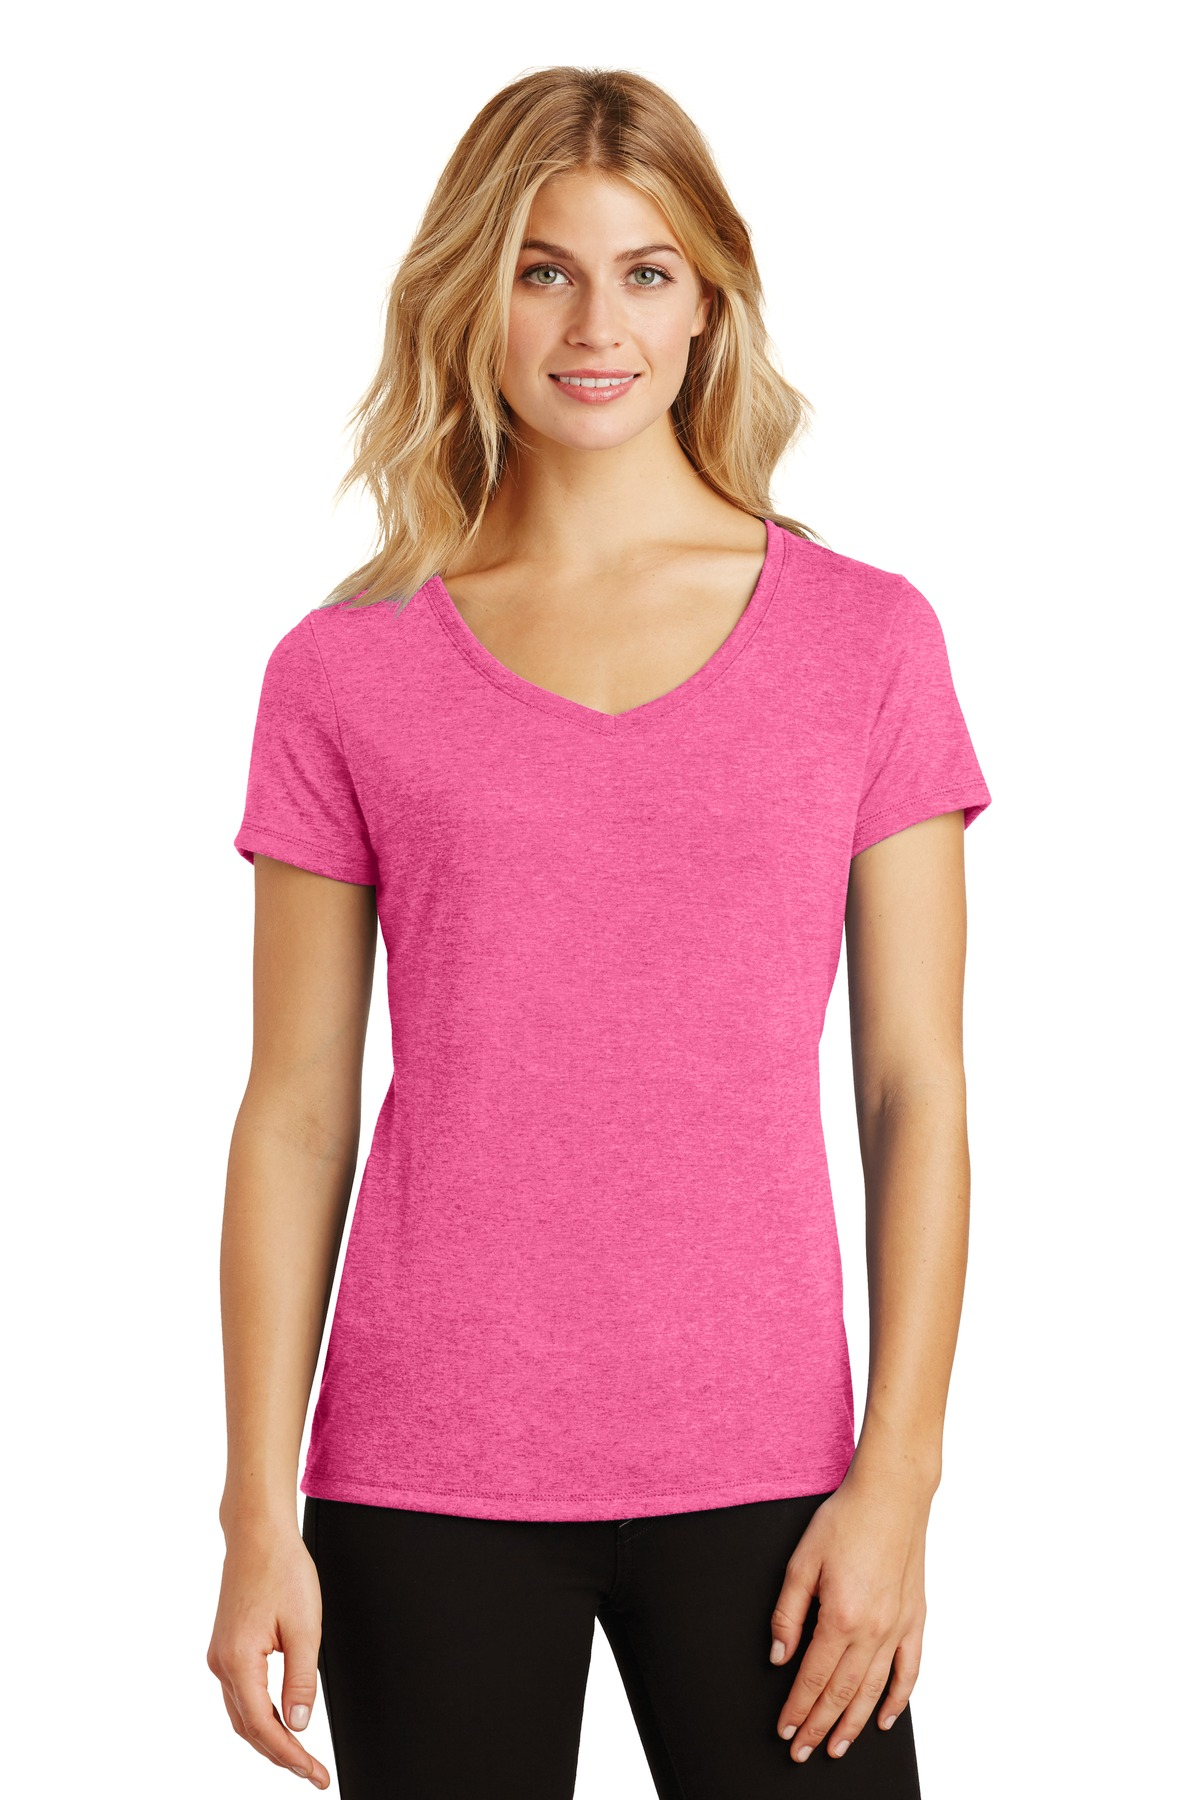 District ®  Women's Perfect Tri ®  V-Neck Tee. DM1350L - Fuchsia Frost